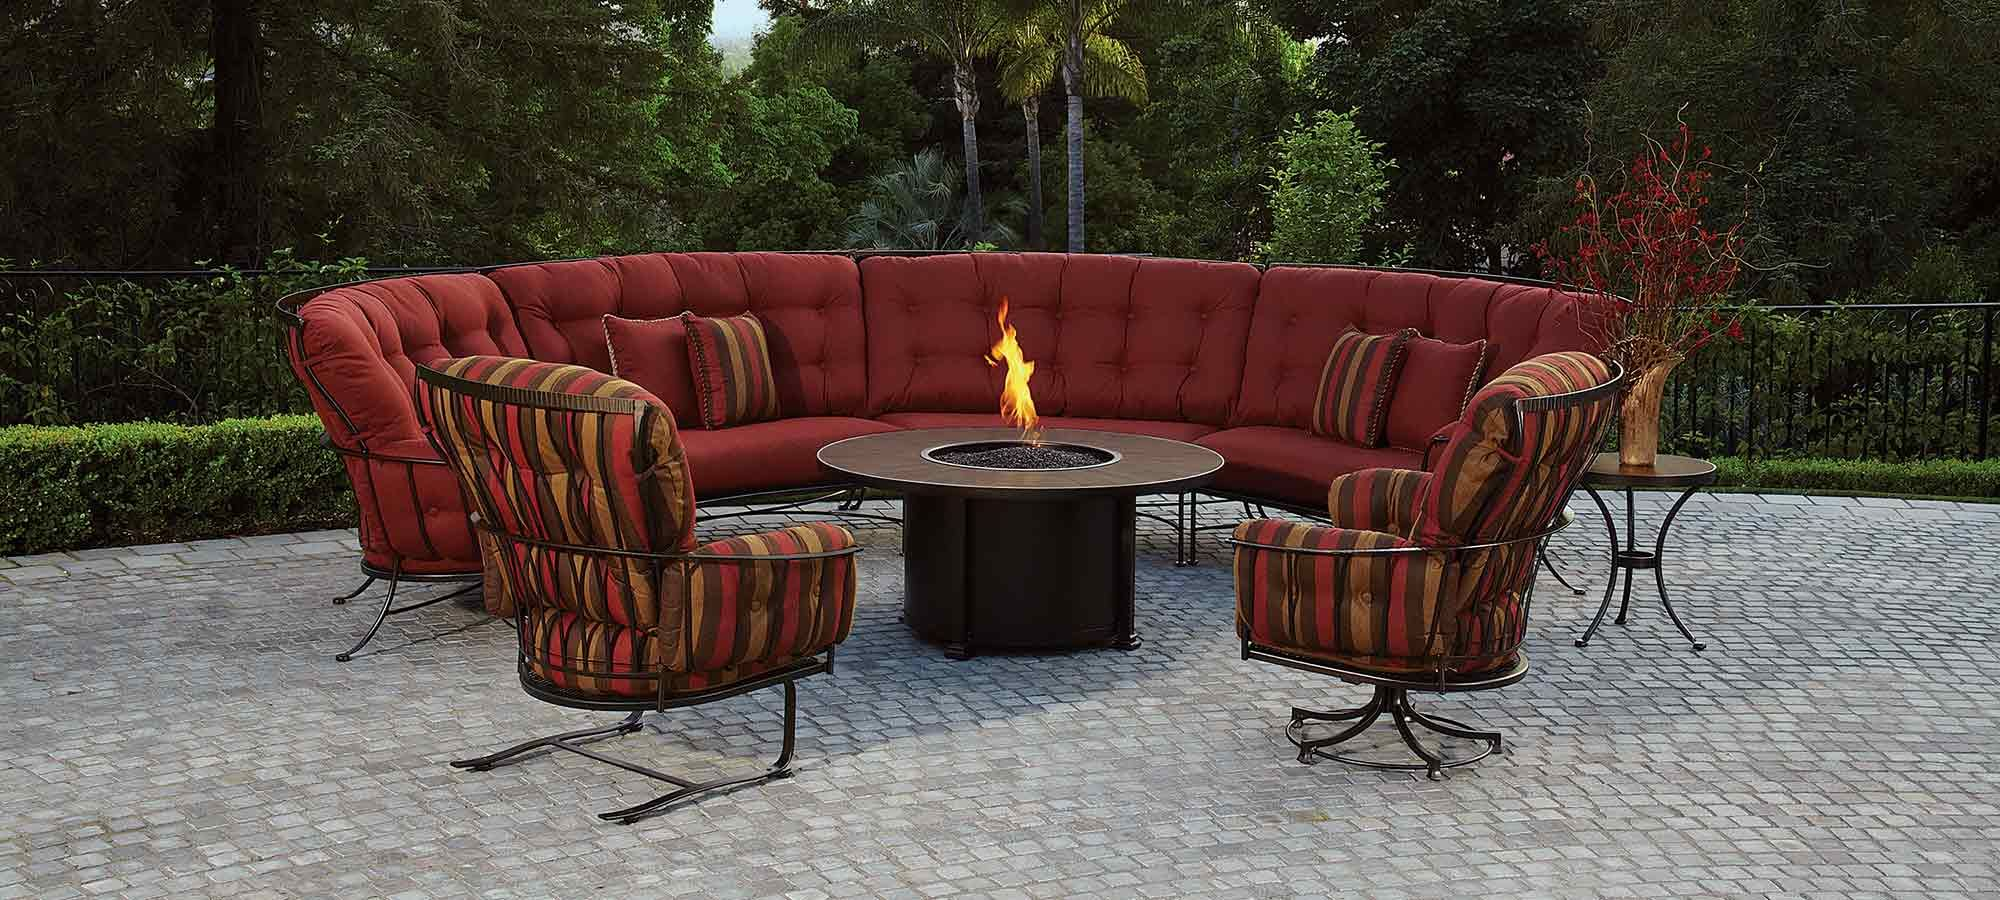 Refresh The Look Of Your Patio With Swanson S Fireplace Patio For The Highest Quality Patio Furniture Redo Wrought Iron Patio Furniture Iron Patio Furniture